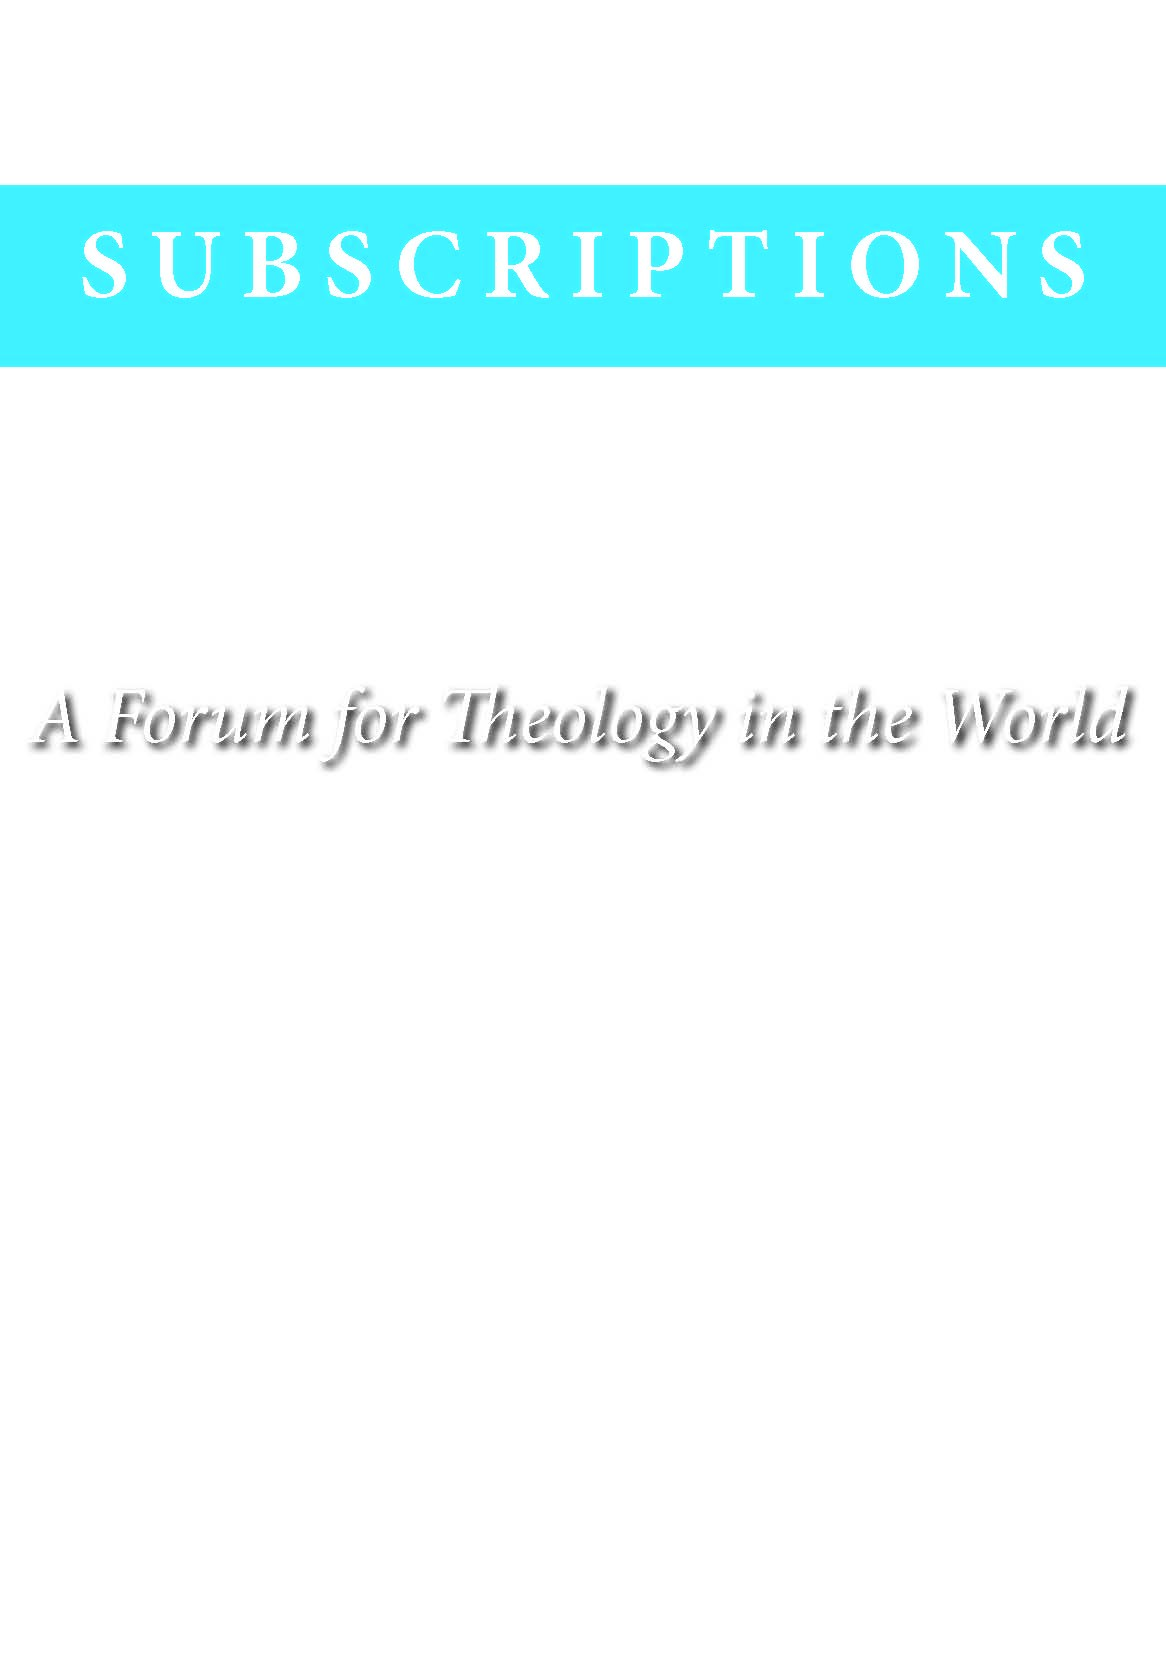 A Forum for Theology in the World Subscriptions (INDIVIDUALS)